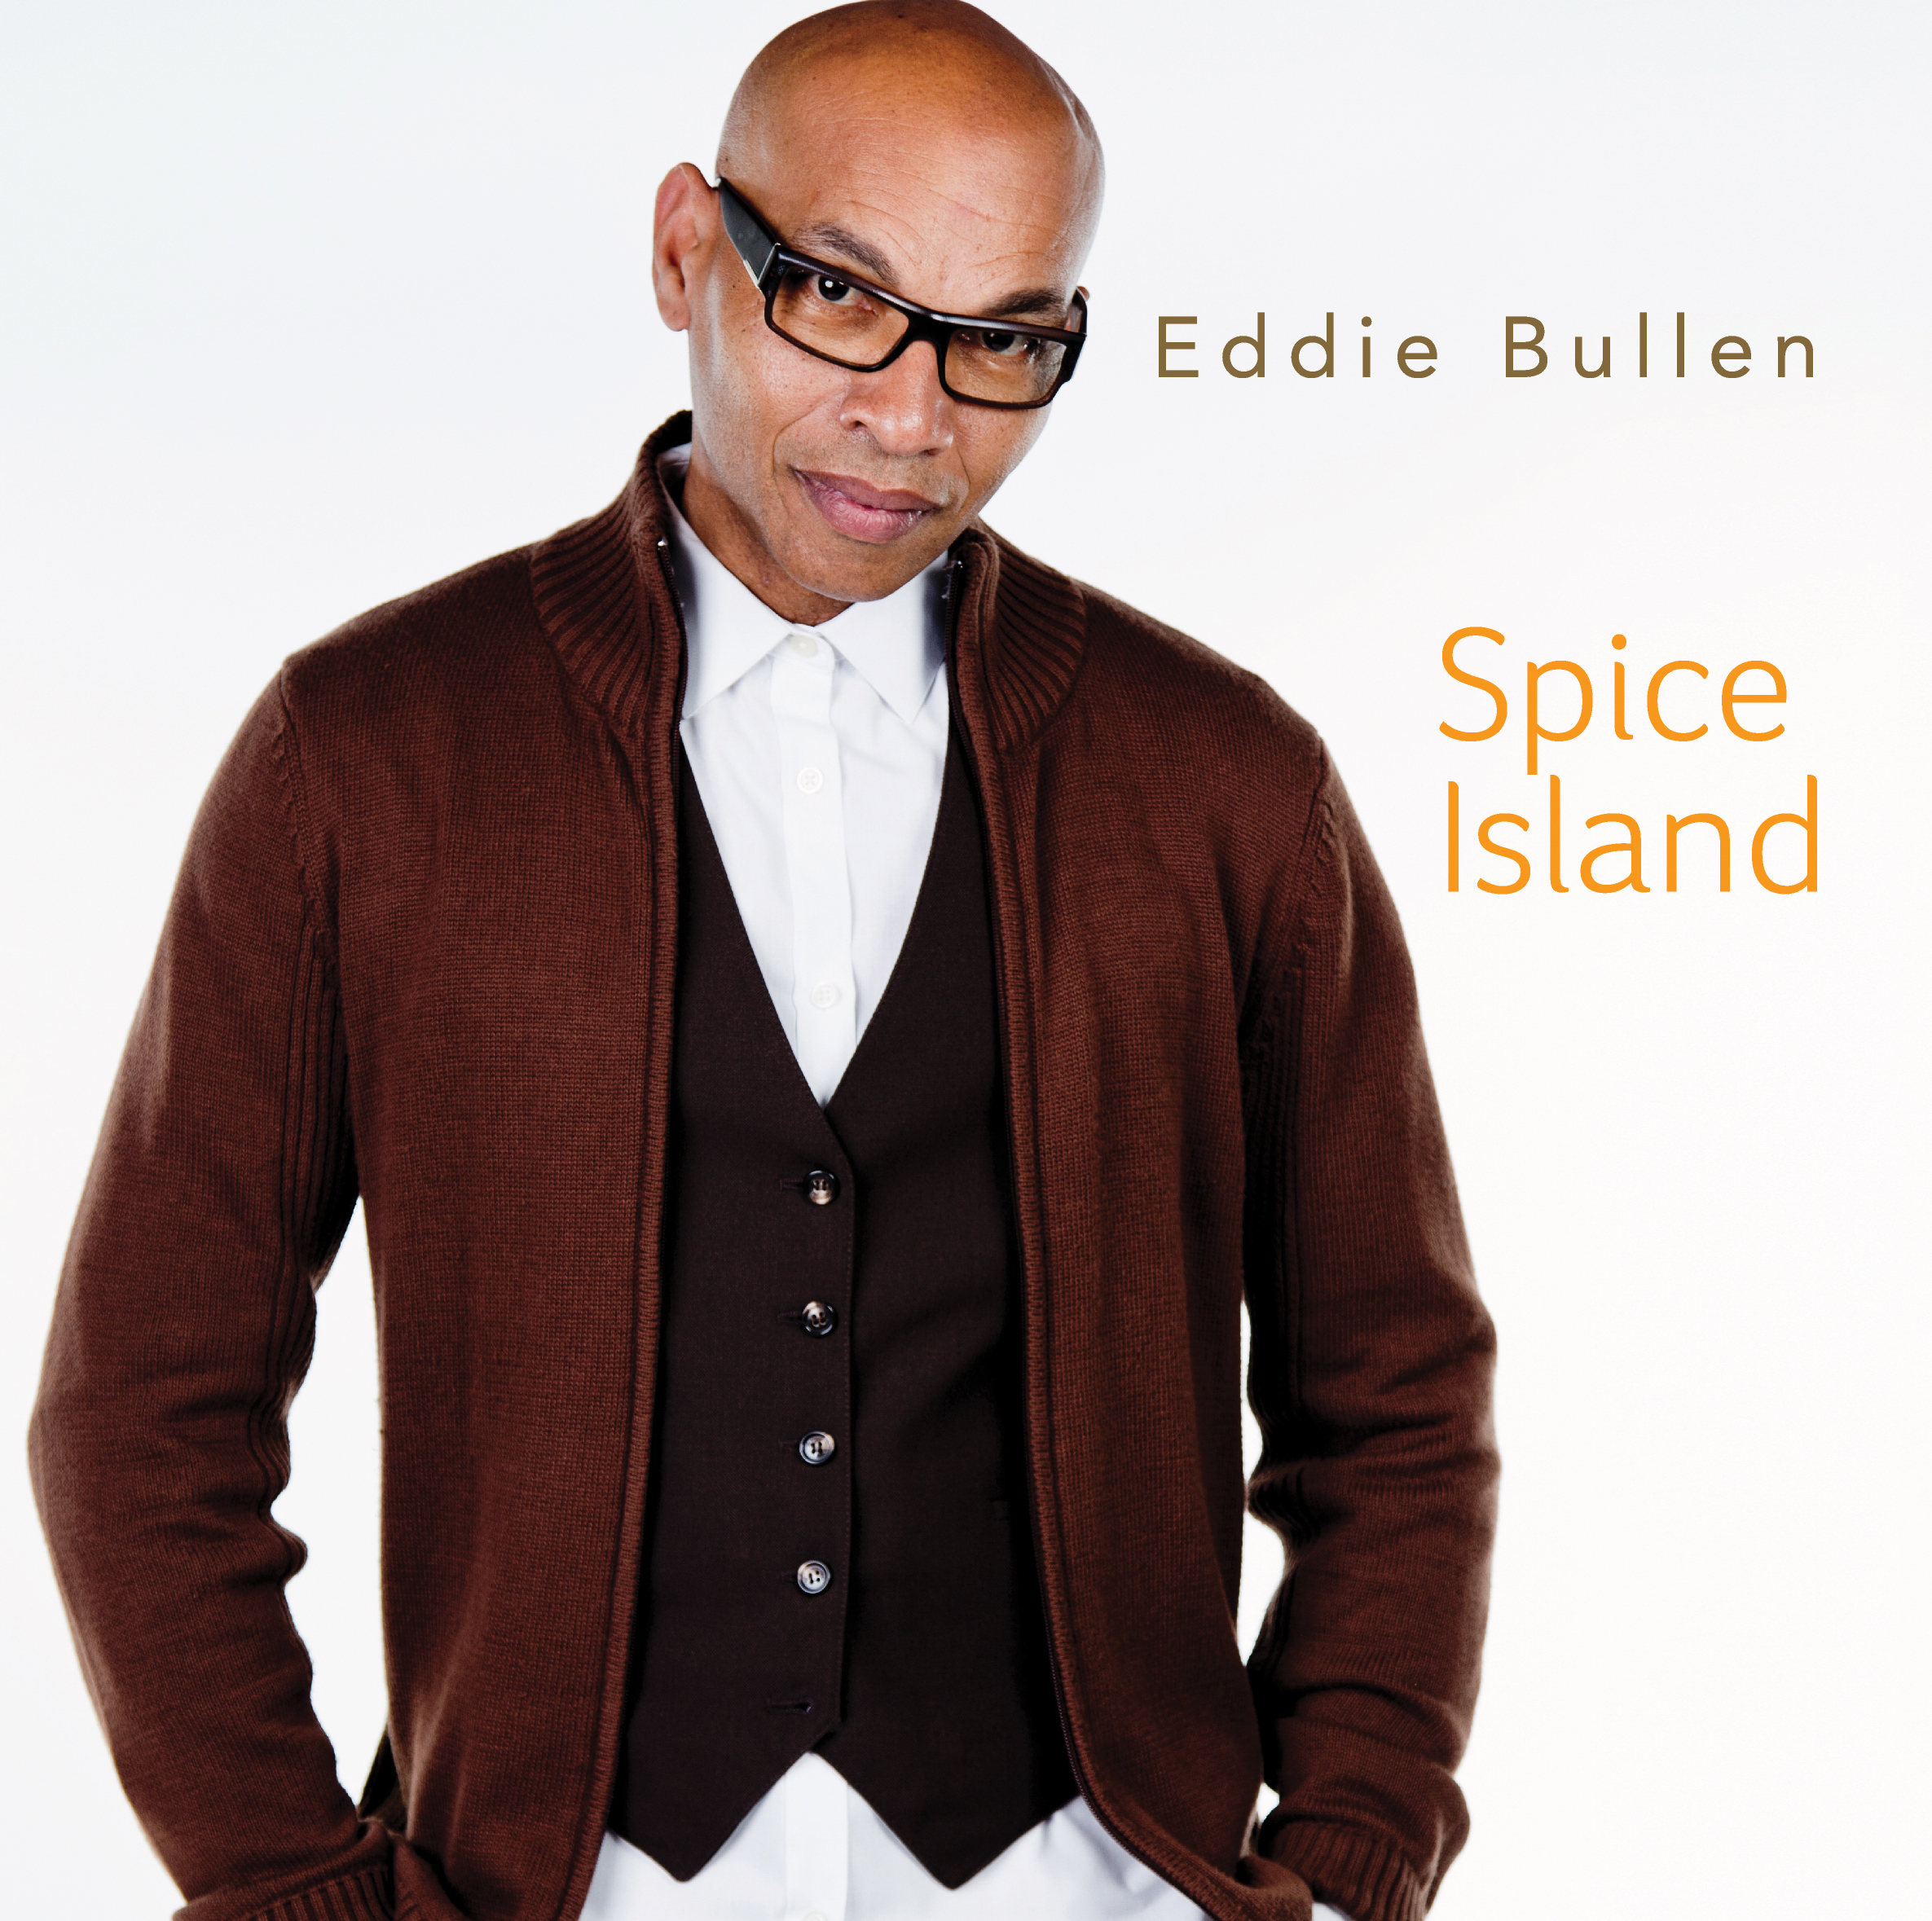 The Pangaea Music House signs deal with Eddie Bullen/QDB Music